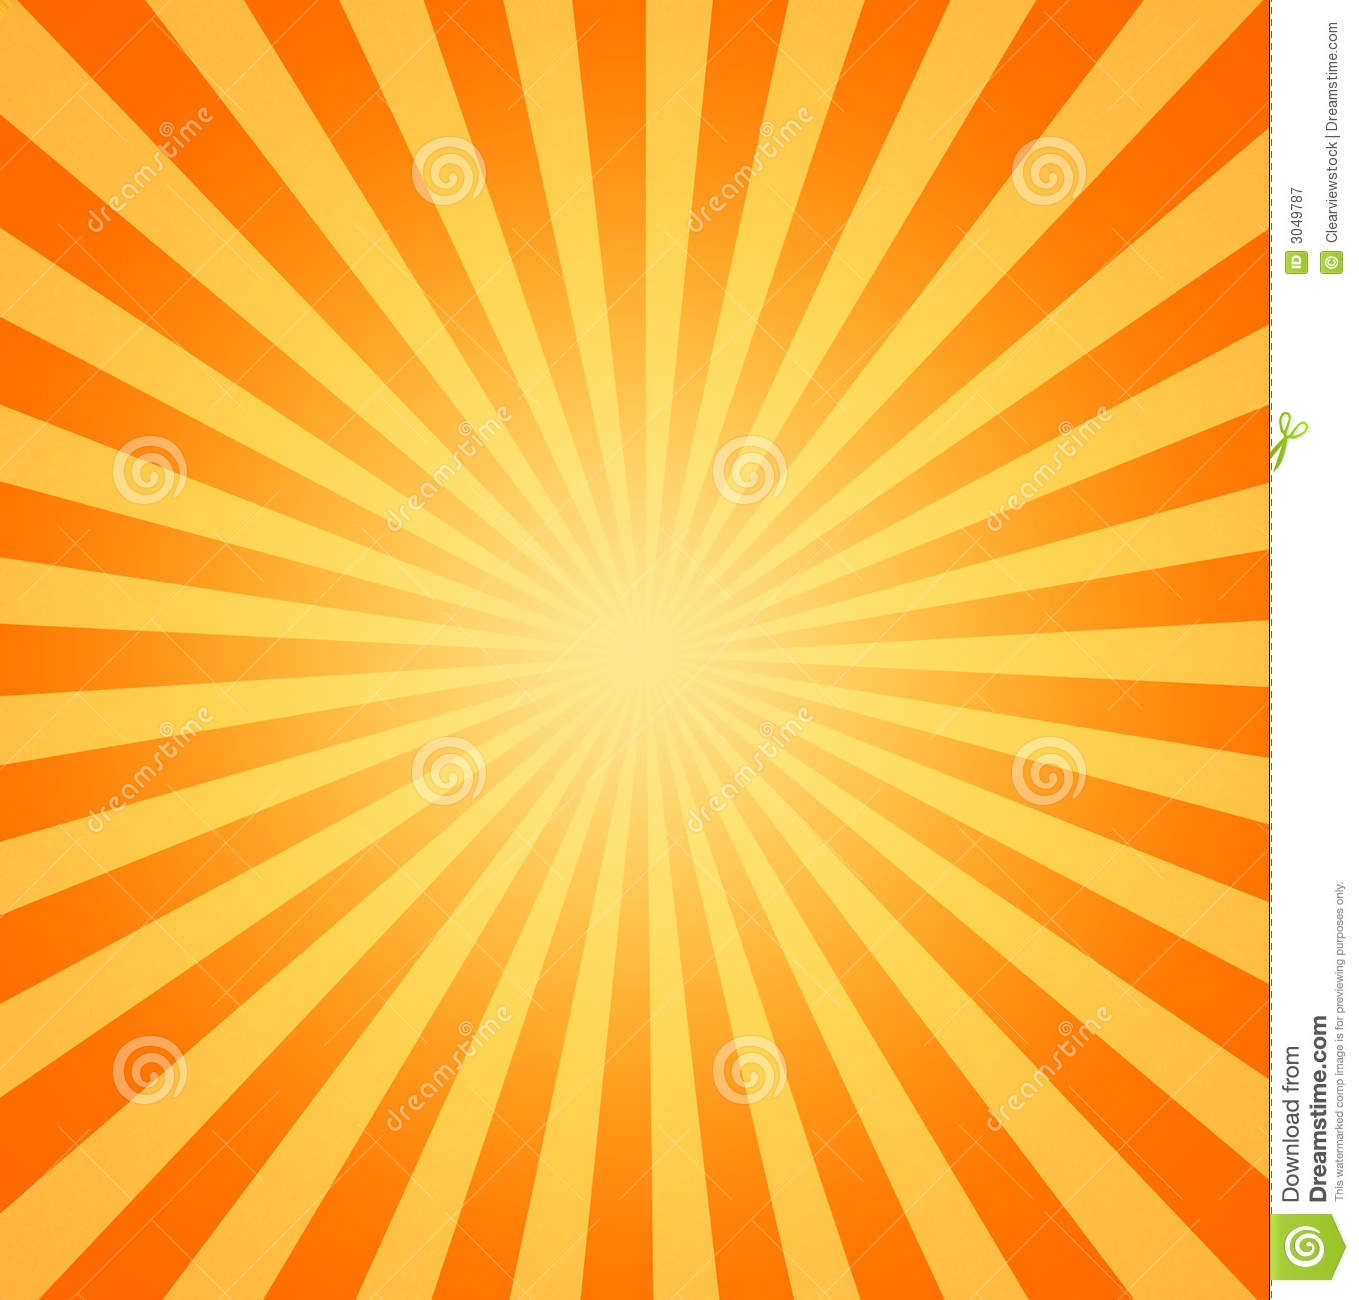 Hot Sun Sunbeams Shining Royalty Free Stock Photography - Image ...